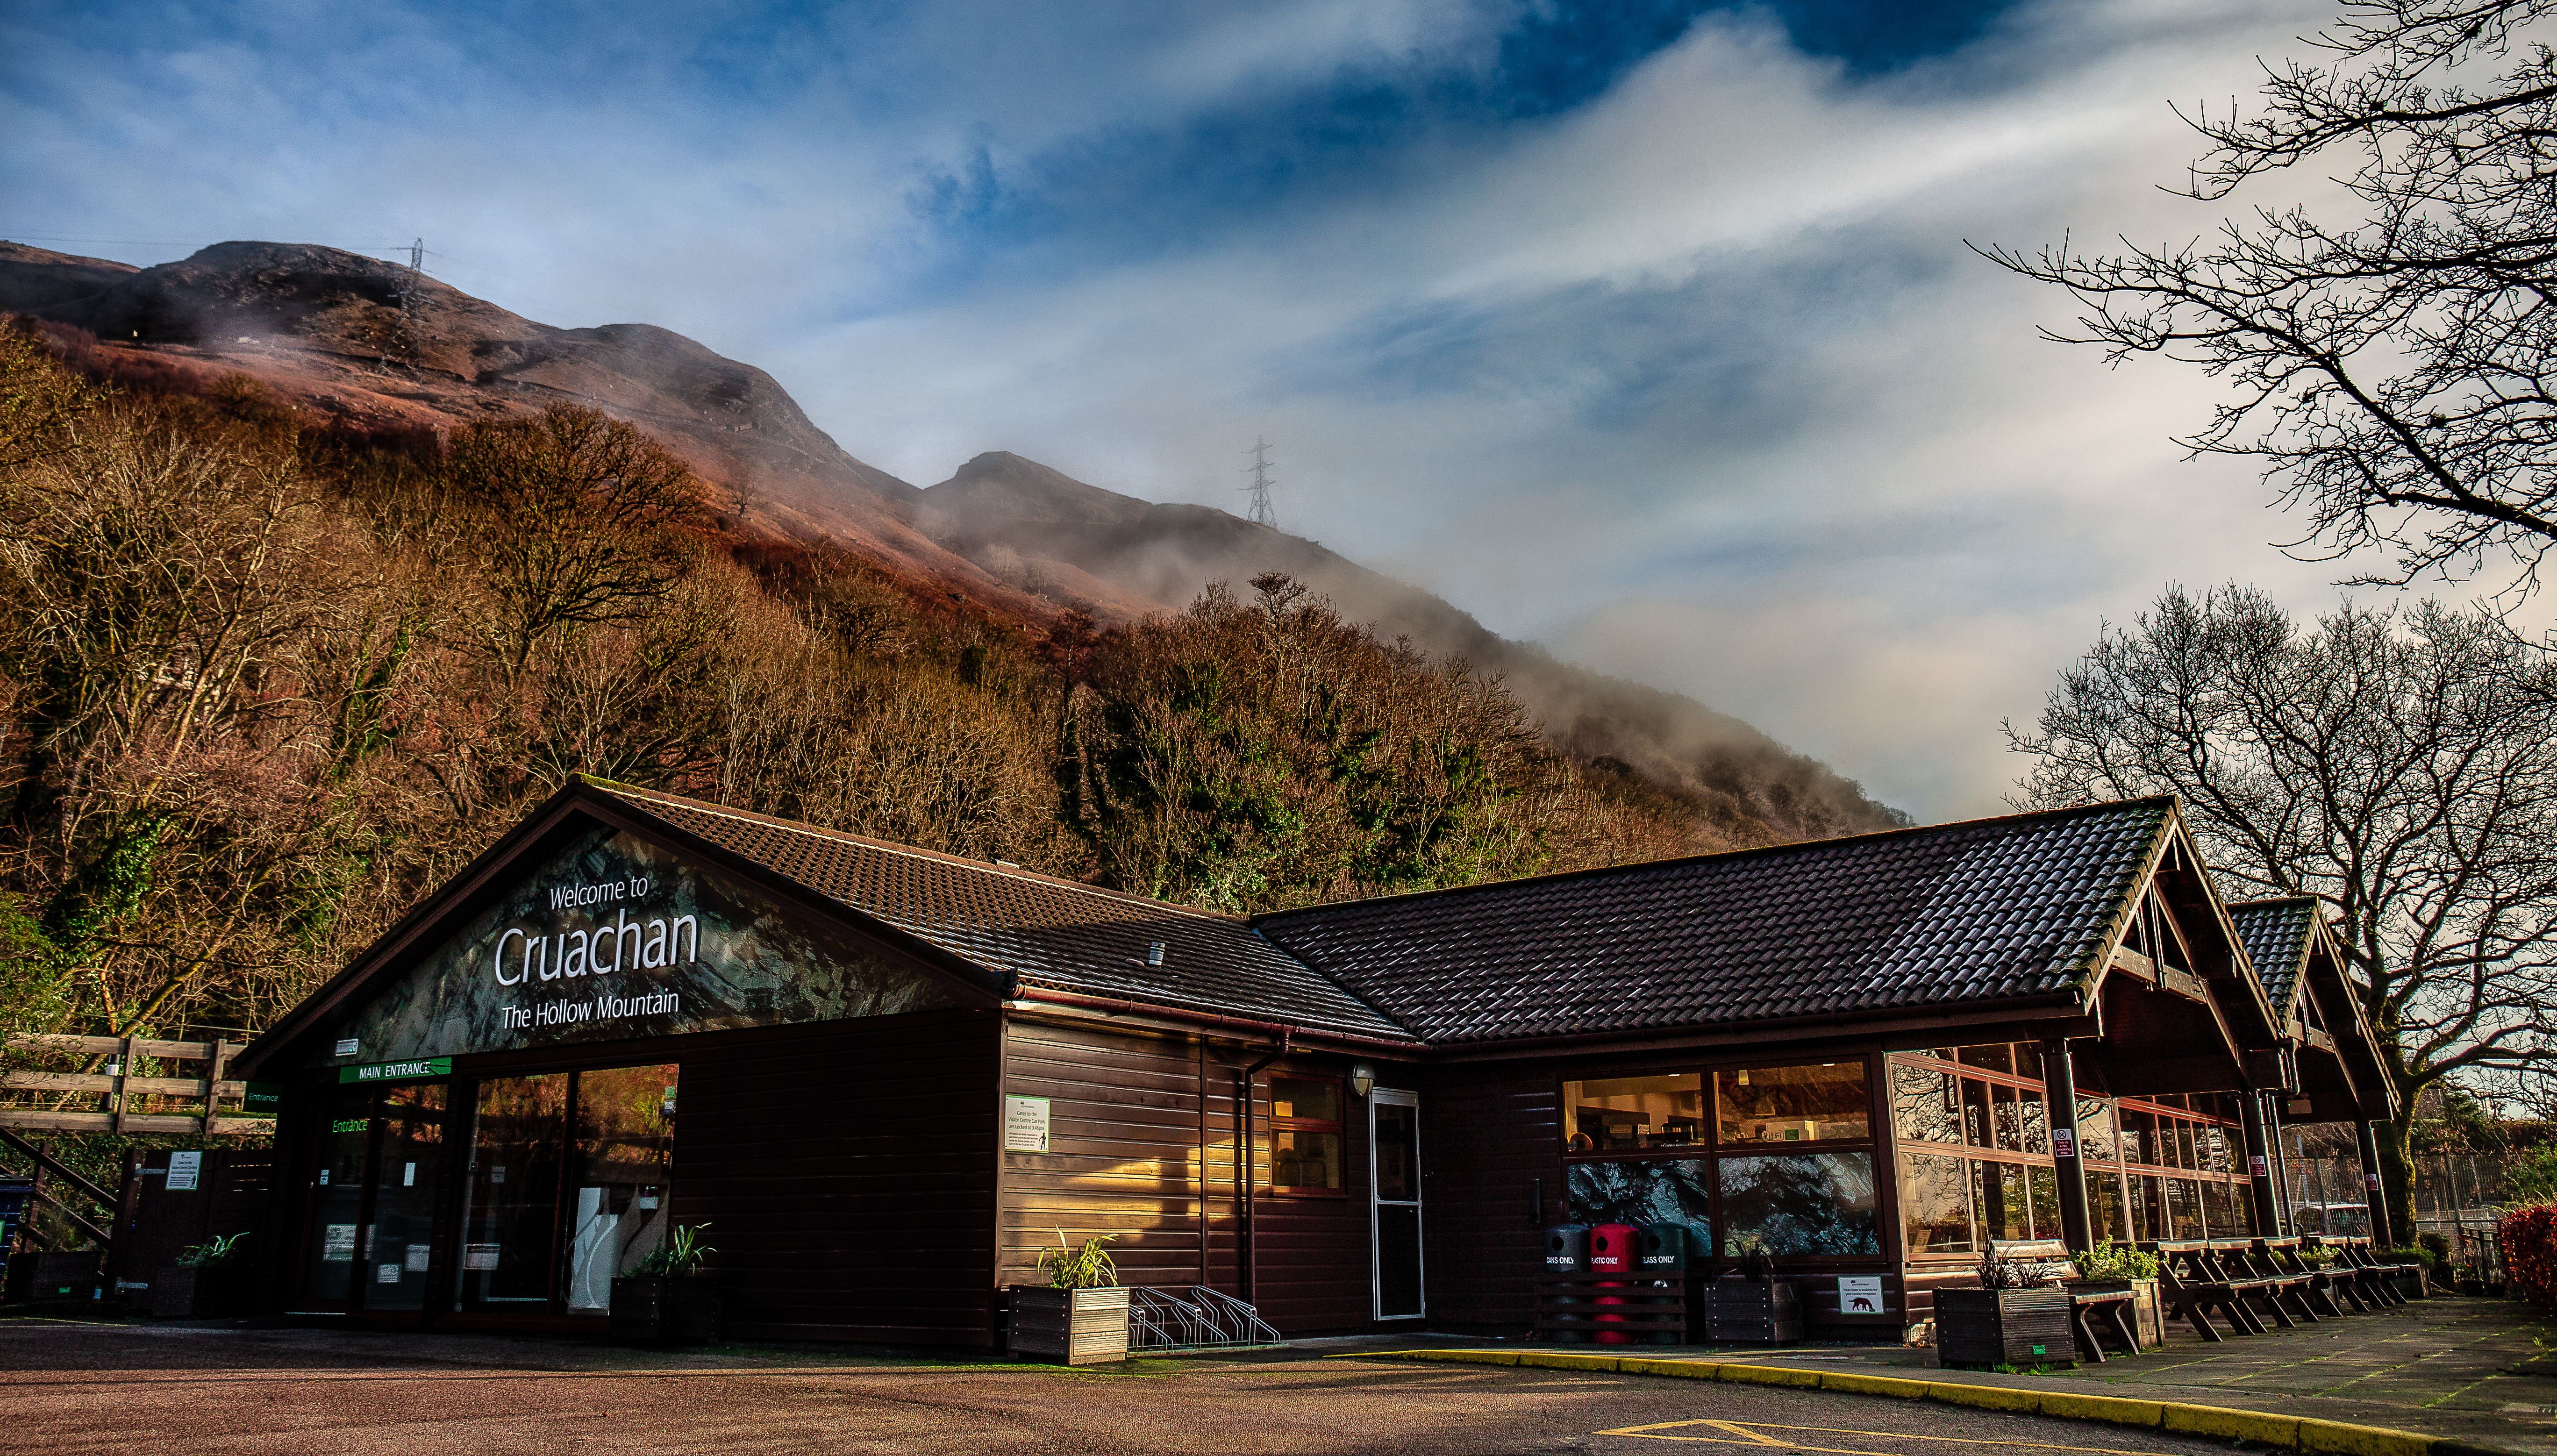 Cruachan, The Hollow Mountain, Welcome Centre.